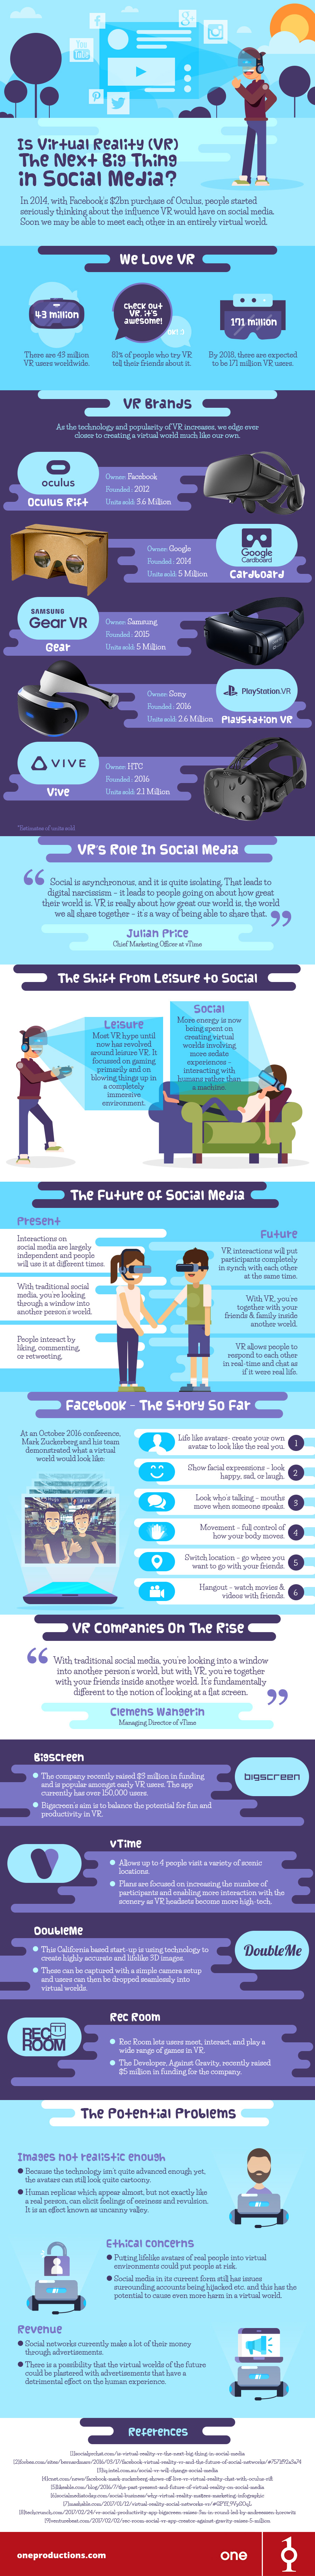 Is-Virtual-Reality-the-Next-Big-Thing-in-Social-Media